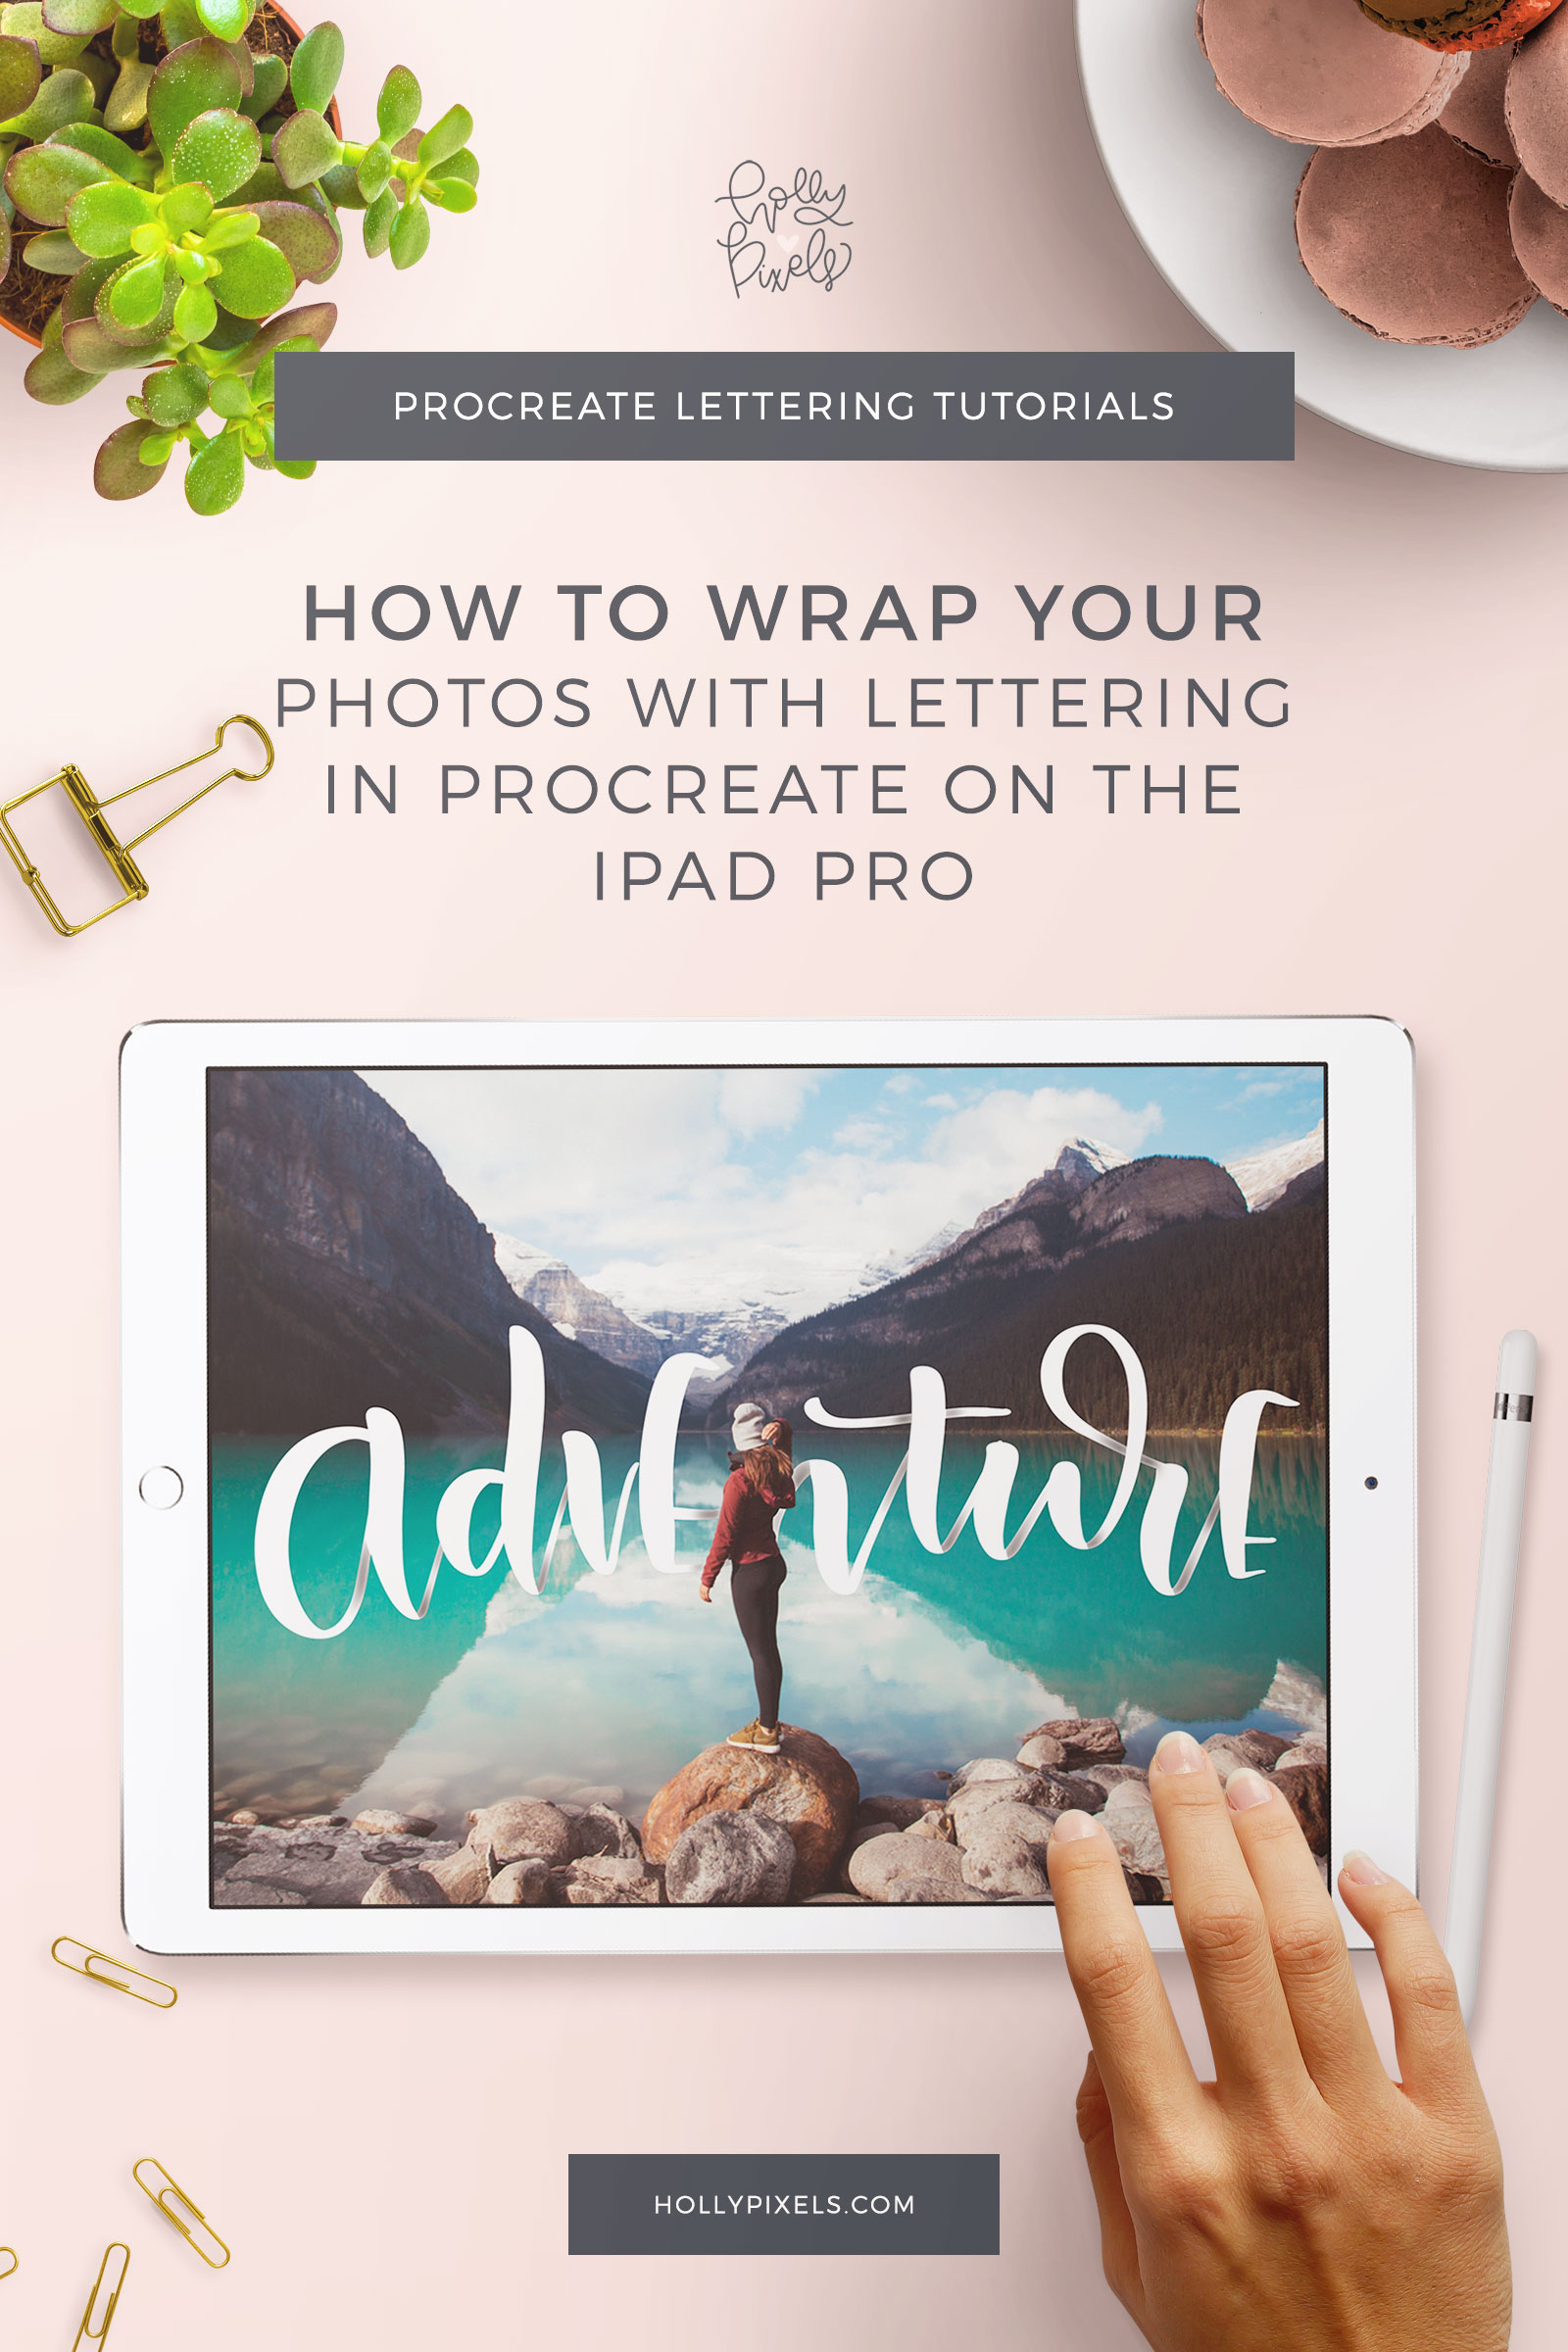 This technique is great for commercial work! Want to learn how to wrap photos with letters? This iPad Pro lettering tutorial with Procreate App is easy to follow. Find the right photos and make magic!